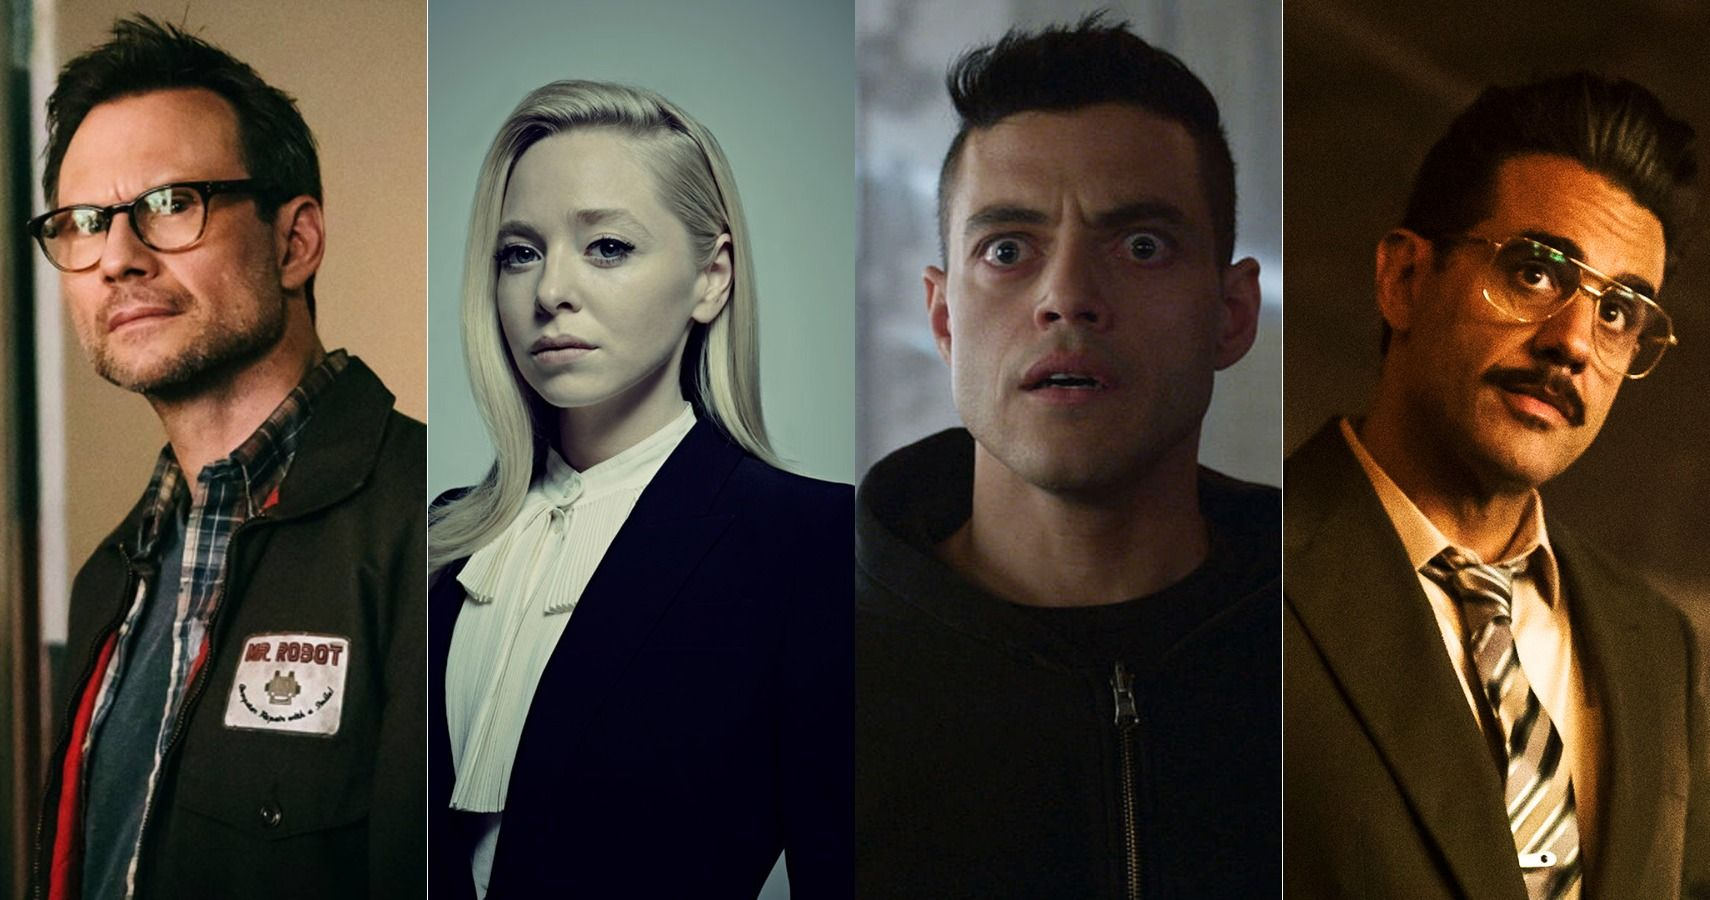 Mr robot cast